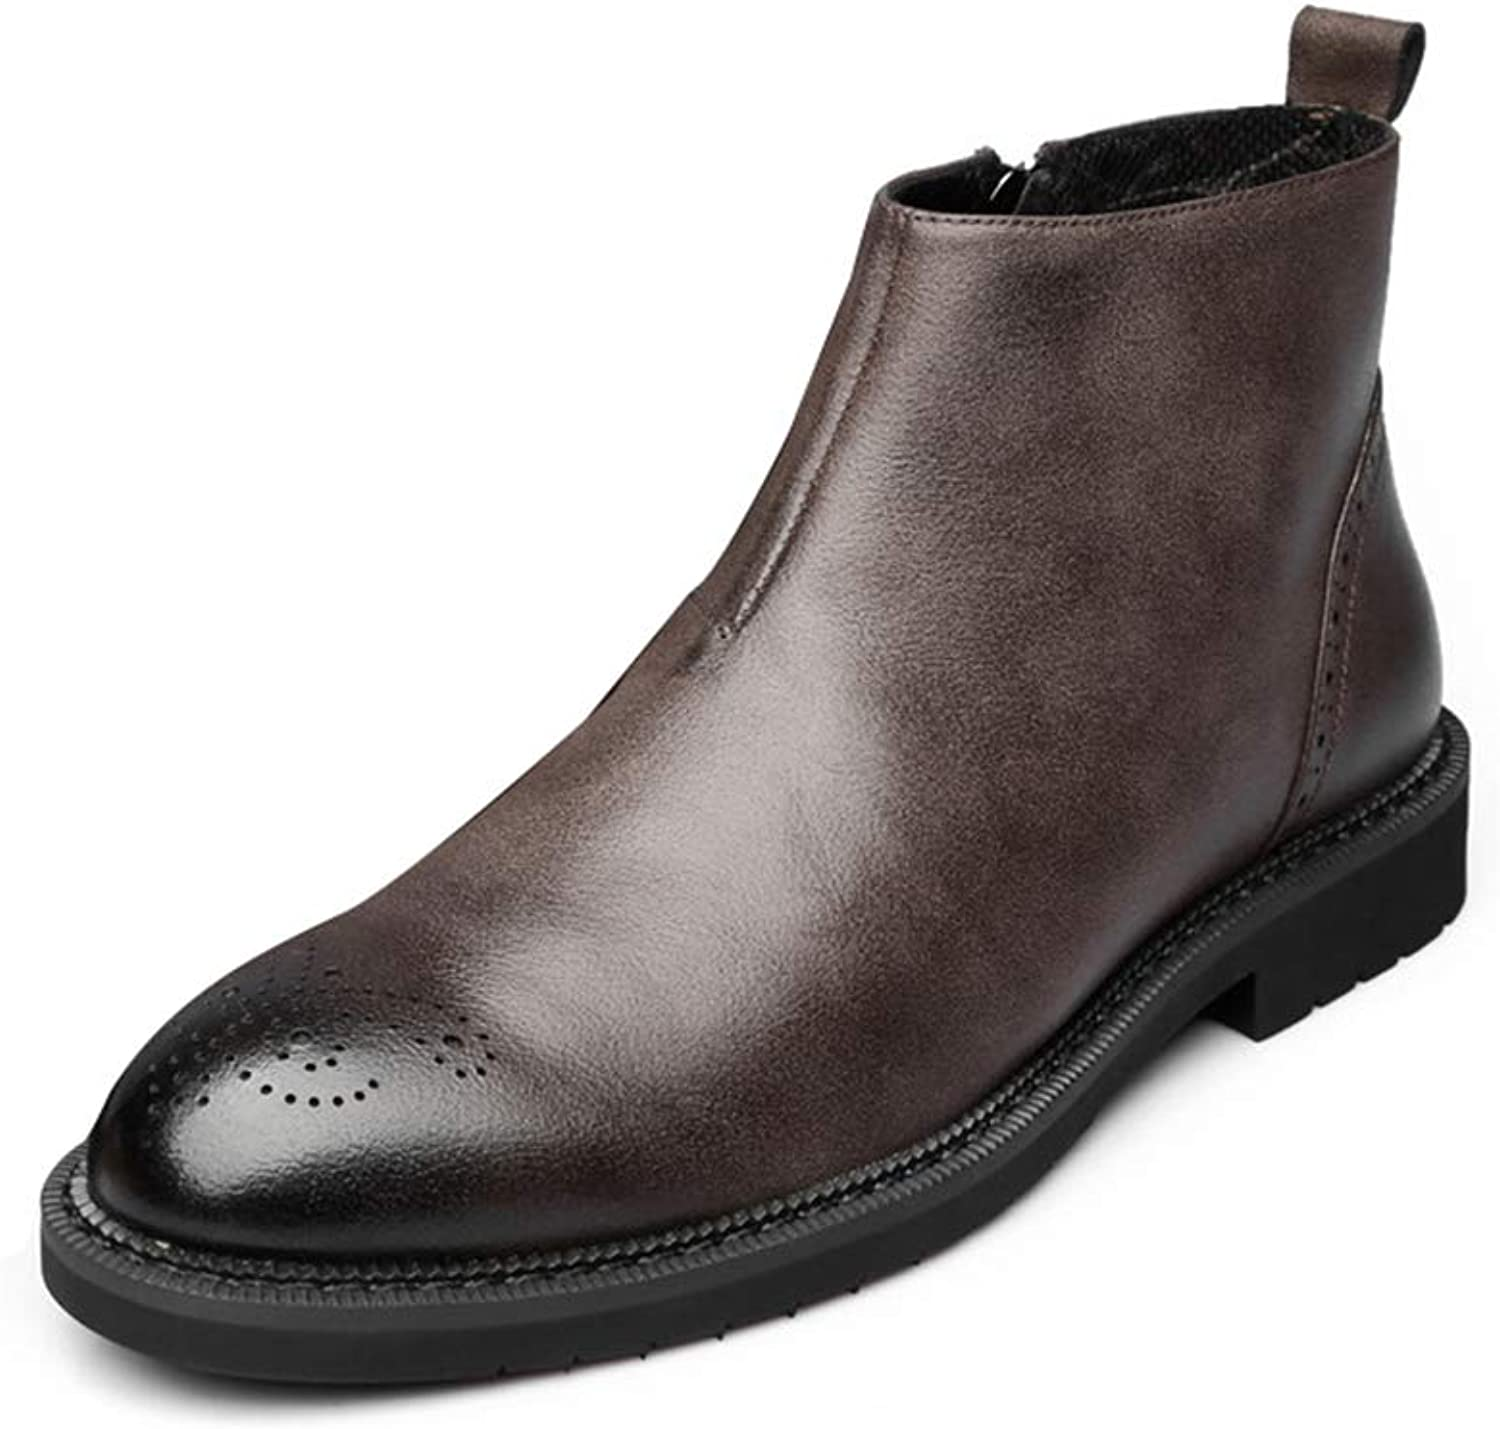 Men Leather Chelsea Boots Soft Ankle Boots Male Formal Dress Boots Anti-Slip Winter Boots in Black Brown